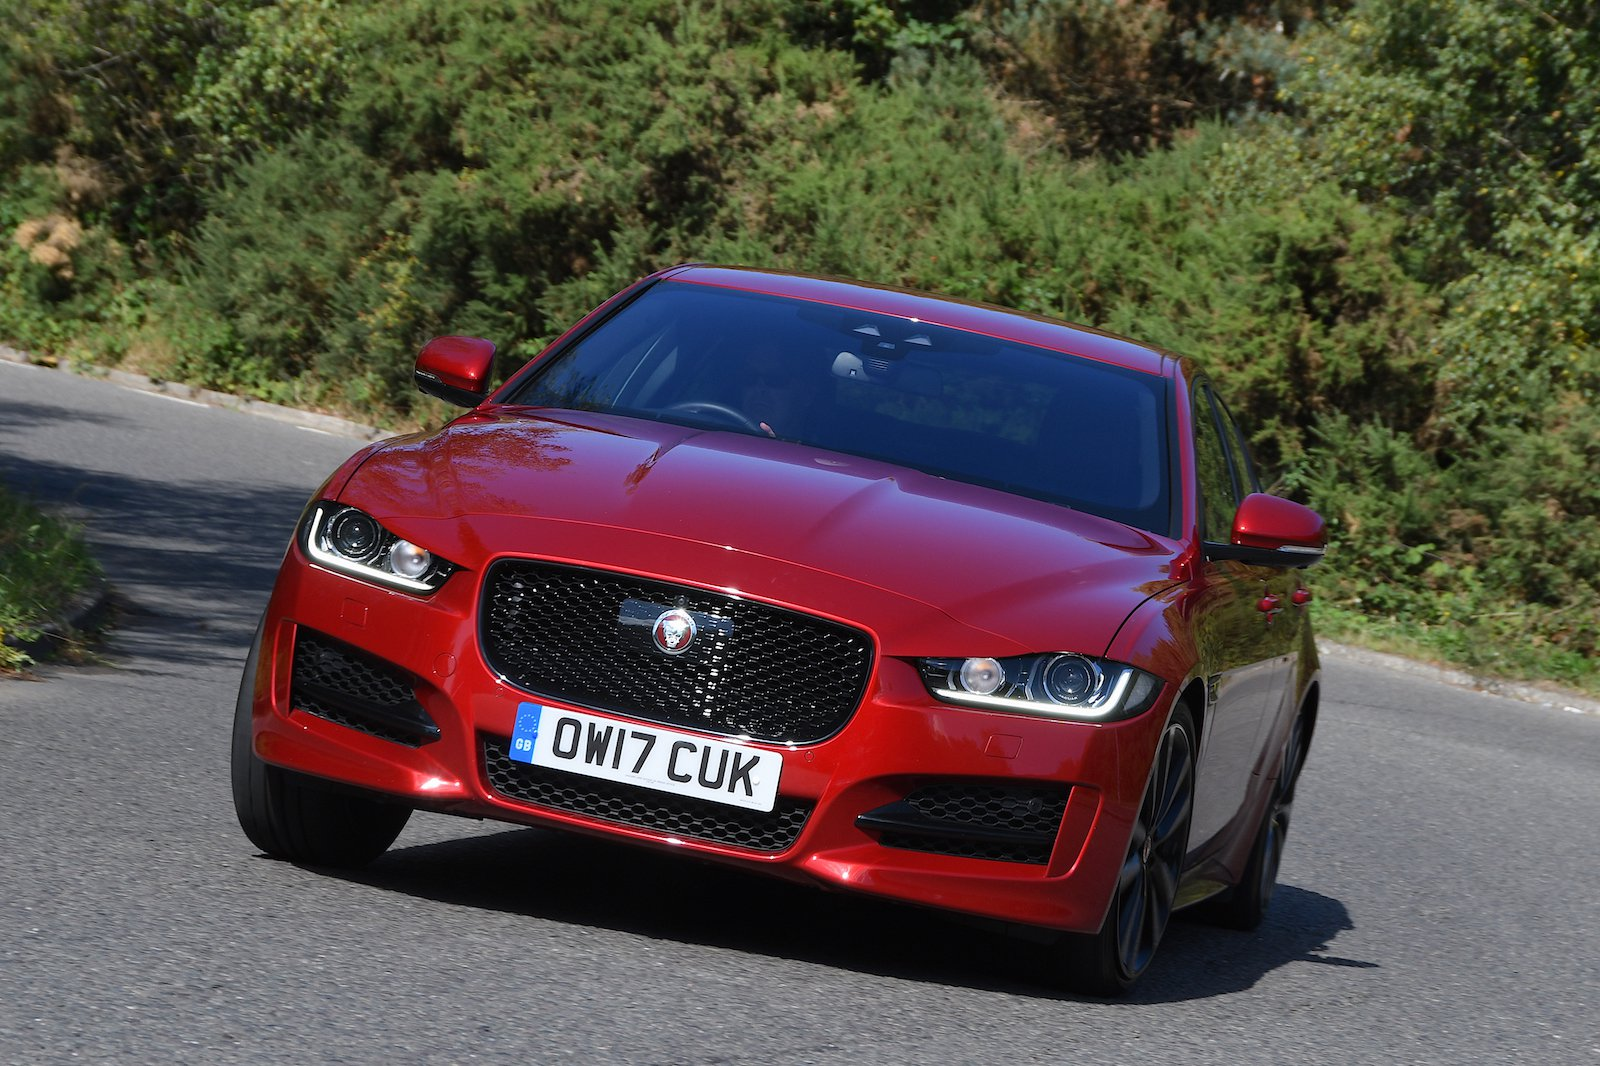 Used Jaguar XE long-term test review